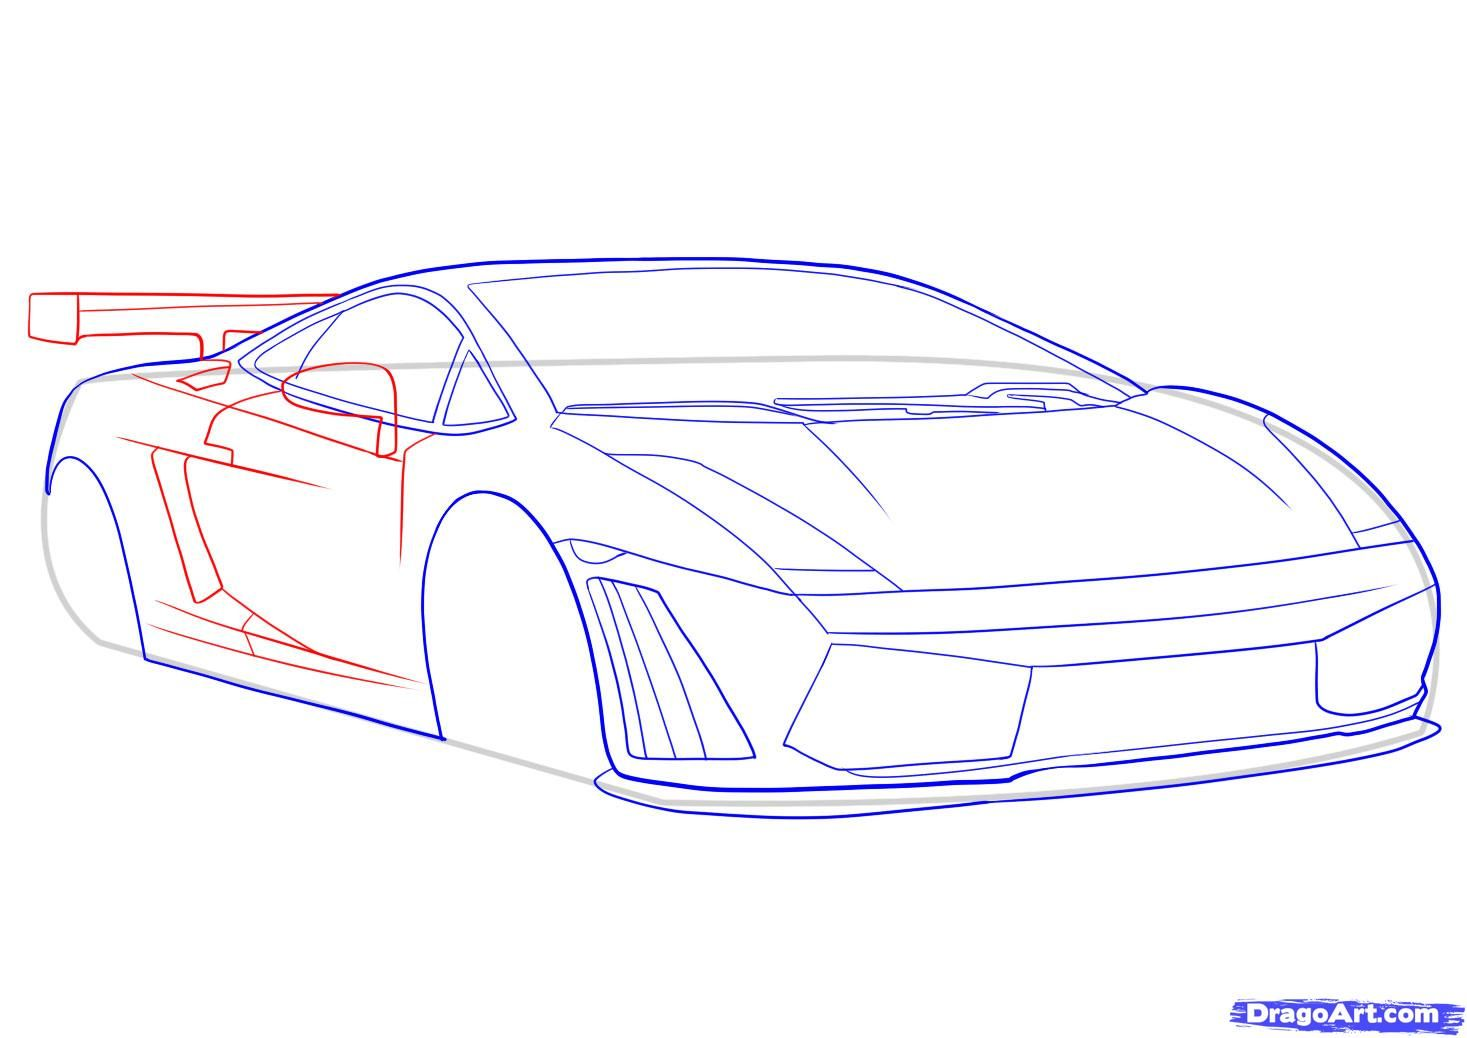 How To Draw A Lamborghini Art Techniques In 2018 Pinterest Diagrams Dragon School Of Motoring Online Drawing